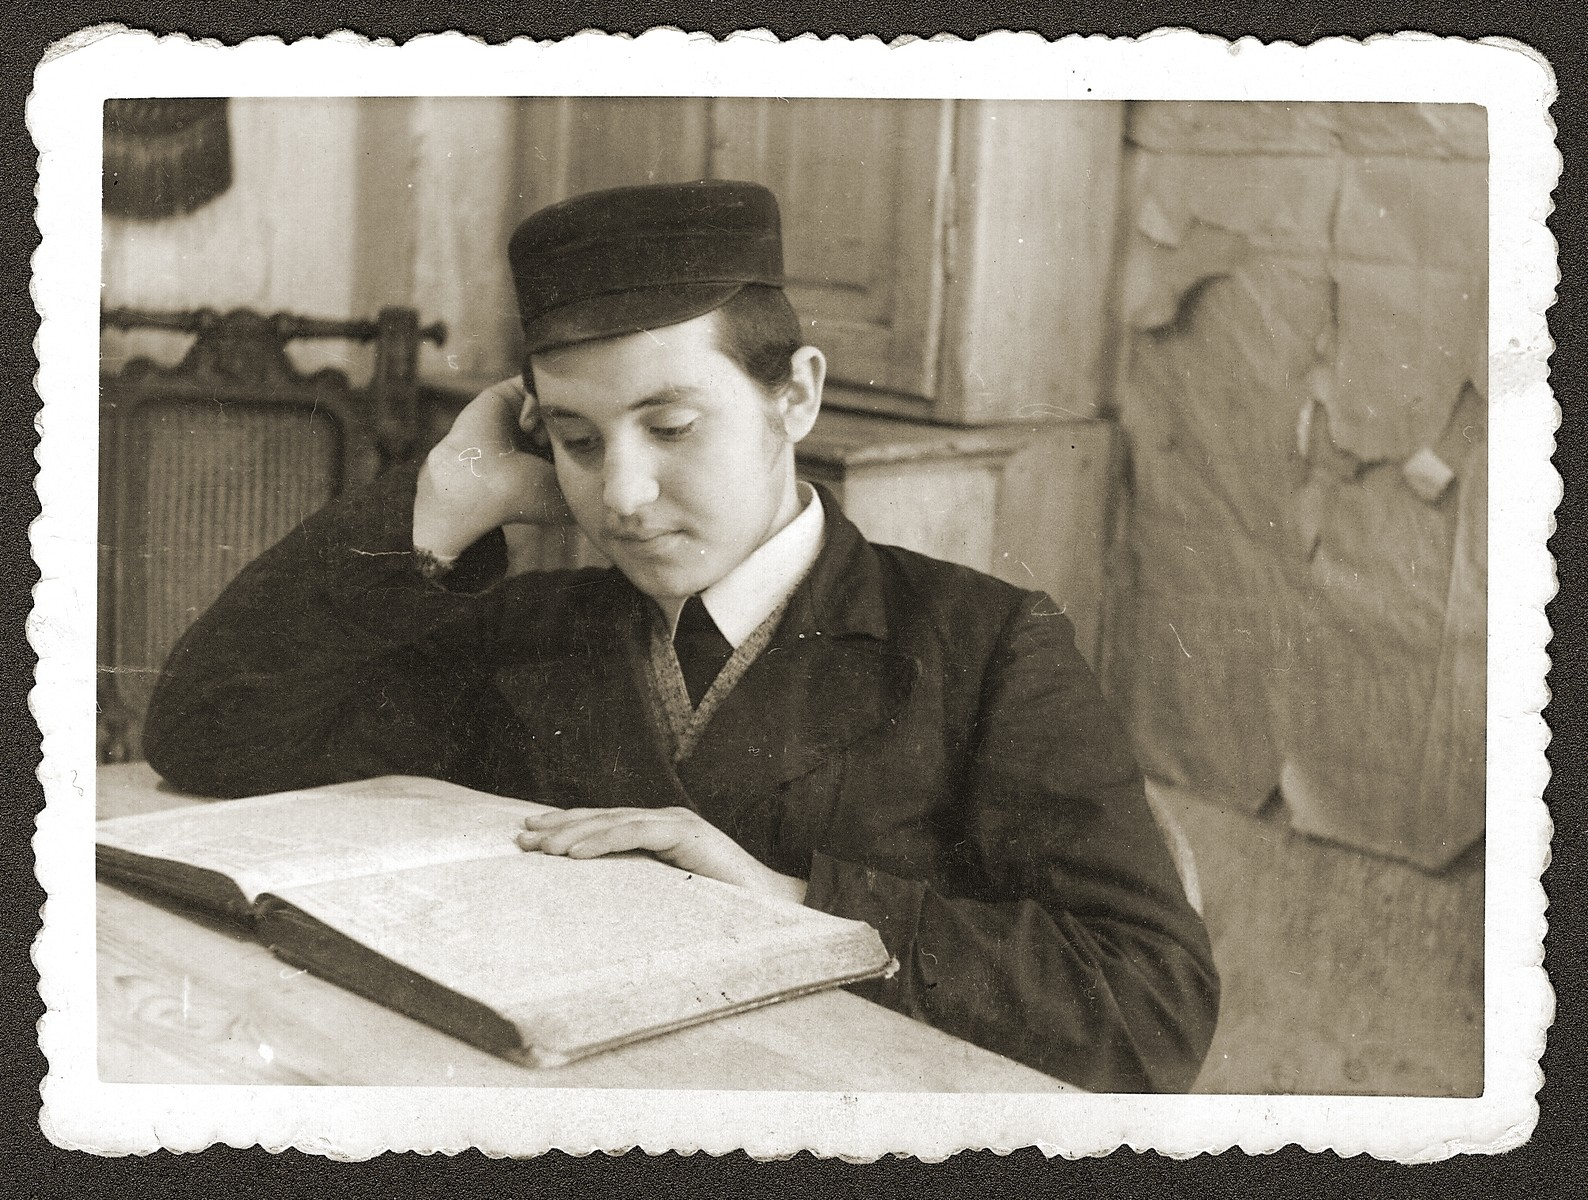 Portrait of sixteen-year-old Szamuel Chaim Rubinsztejn, studying at a yeshiva.